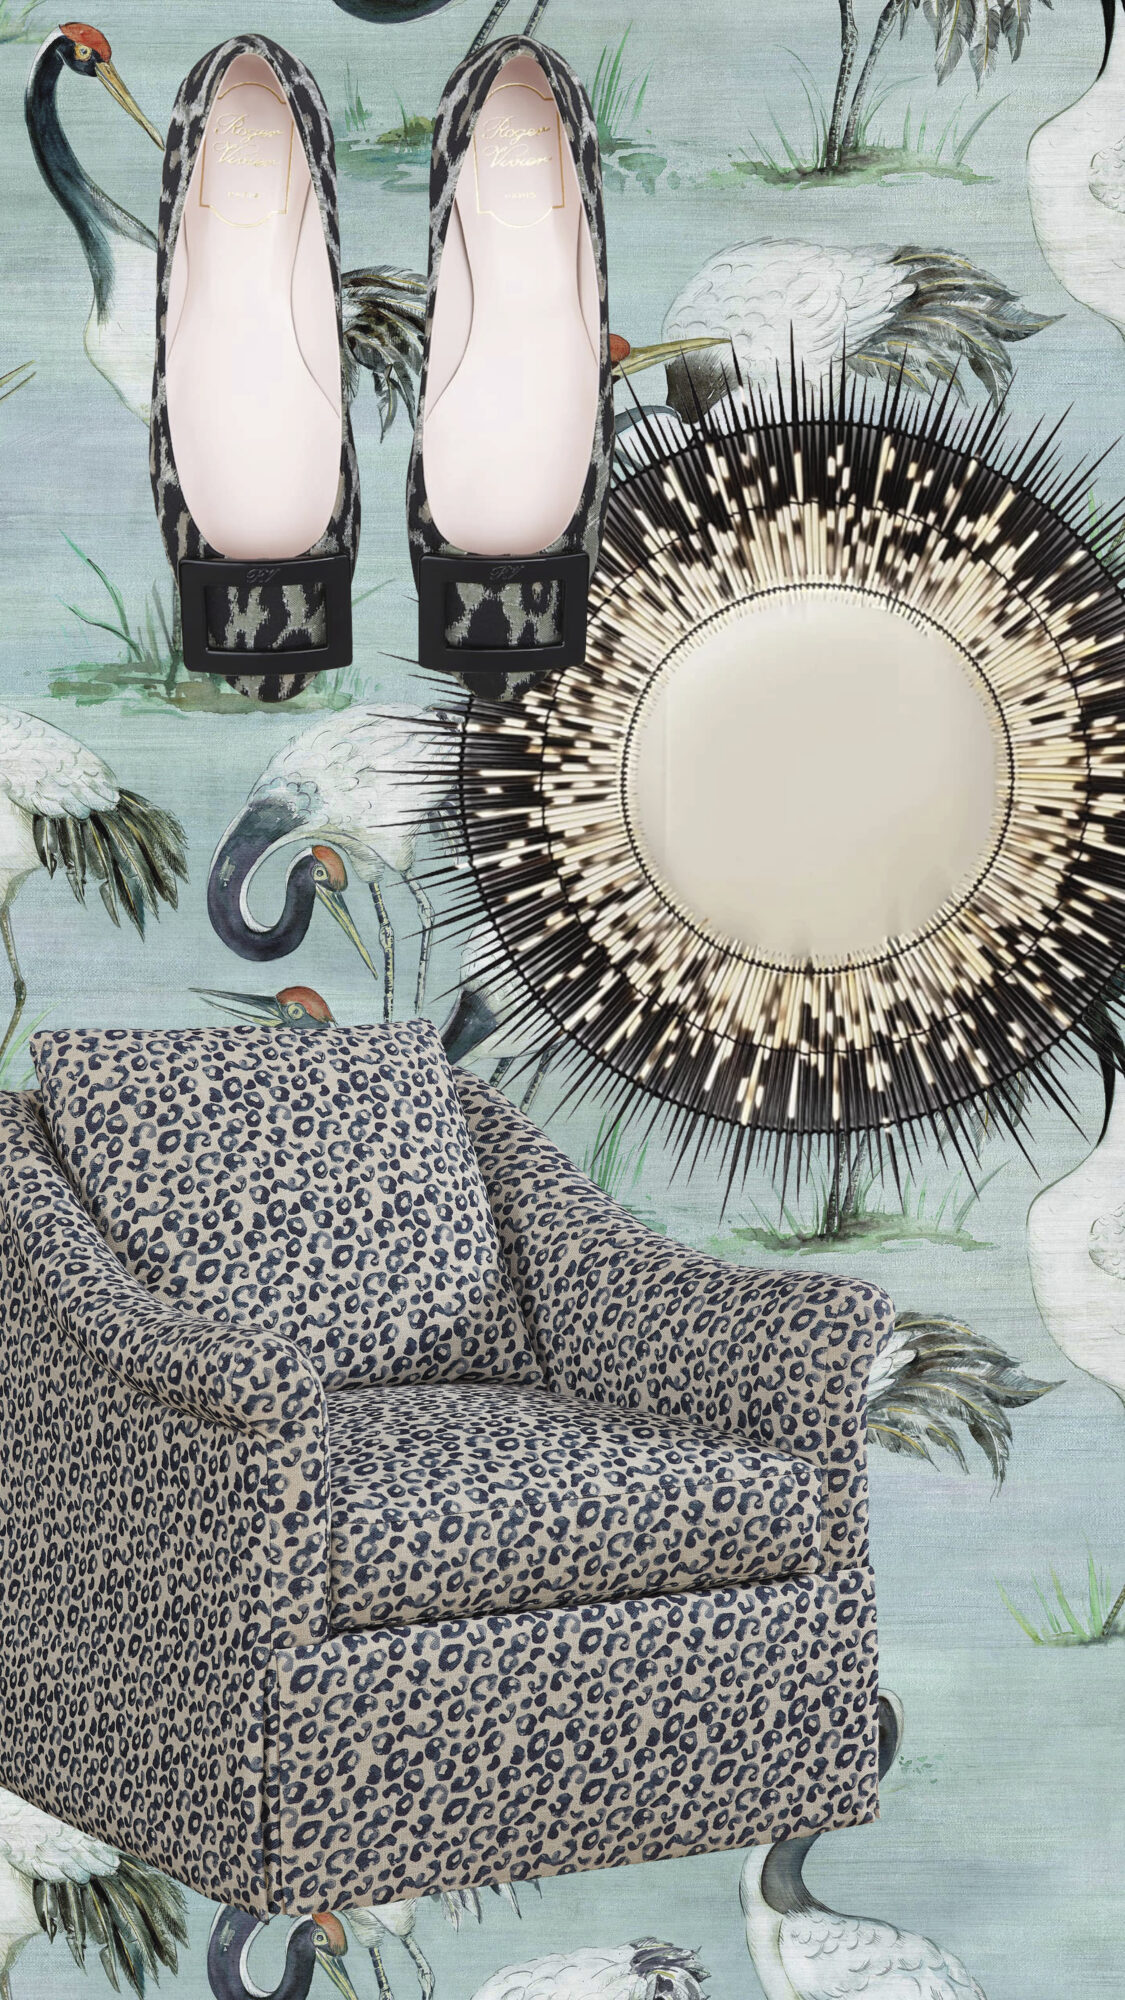 Take A Walk On The Wild Side With Fresh Pieces Inspired By The Animal Kingdom